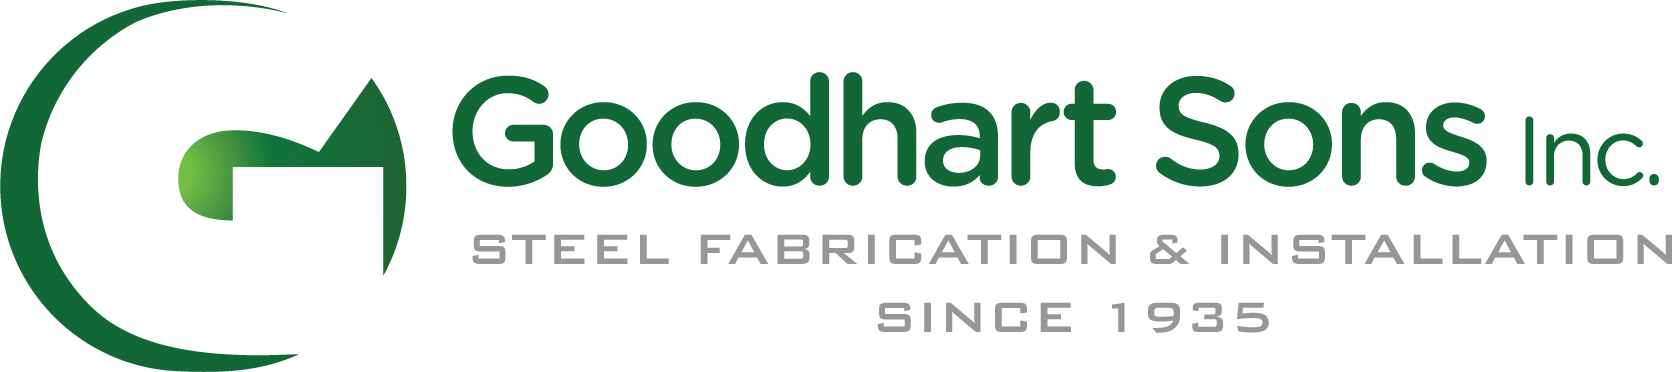 Goodhart Sons Inc. logo